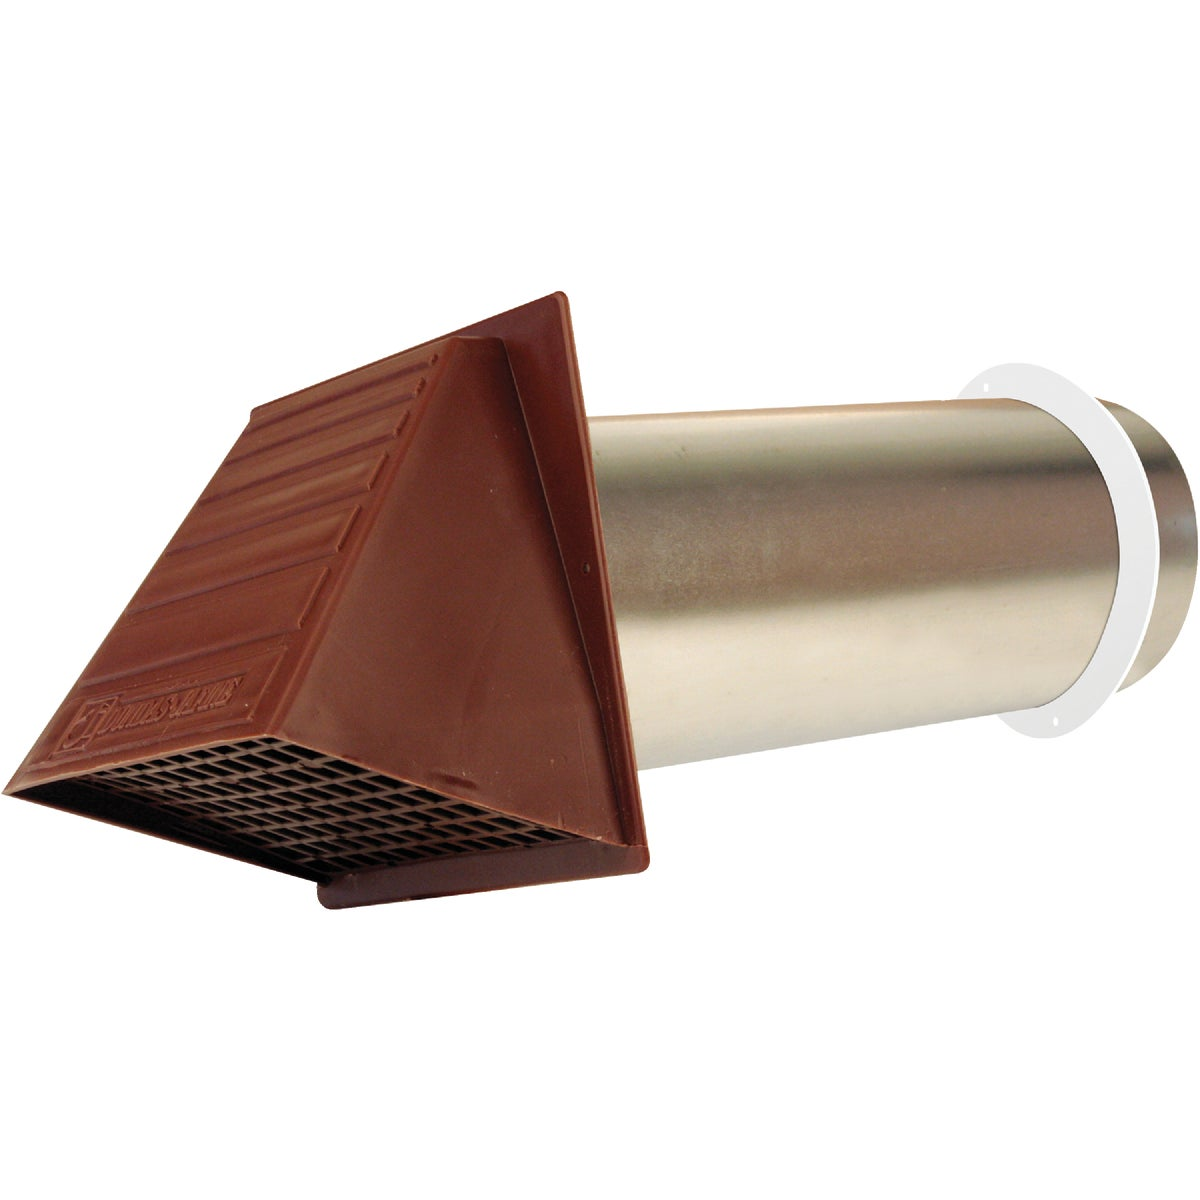 "4"" BROWN VENT HOOD - MVPB4BZ by Dundas Jafine"